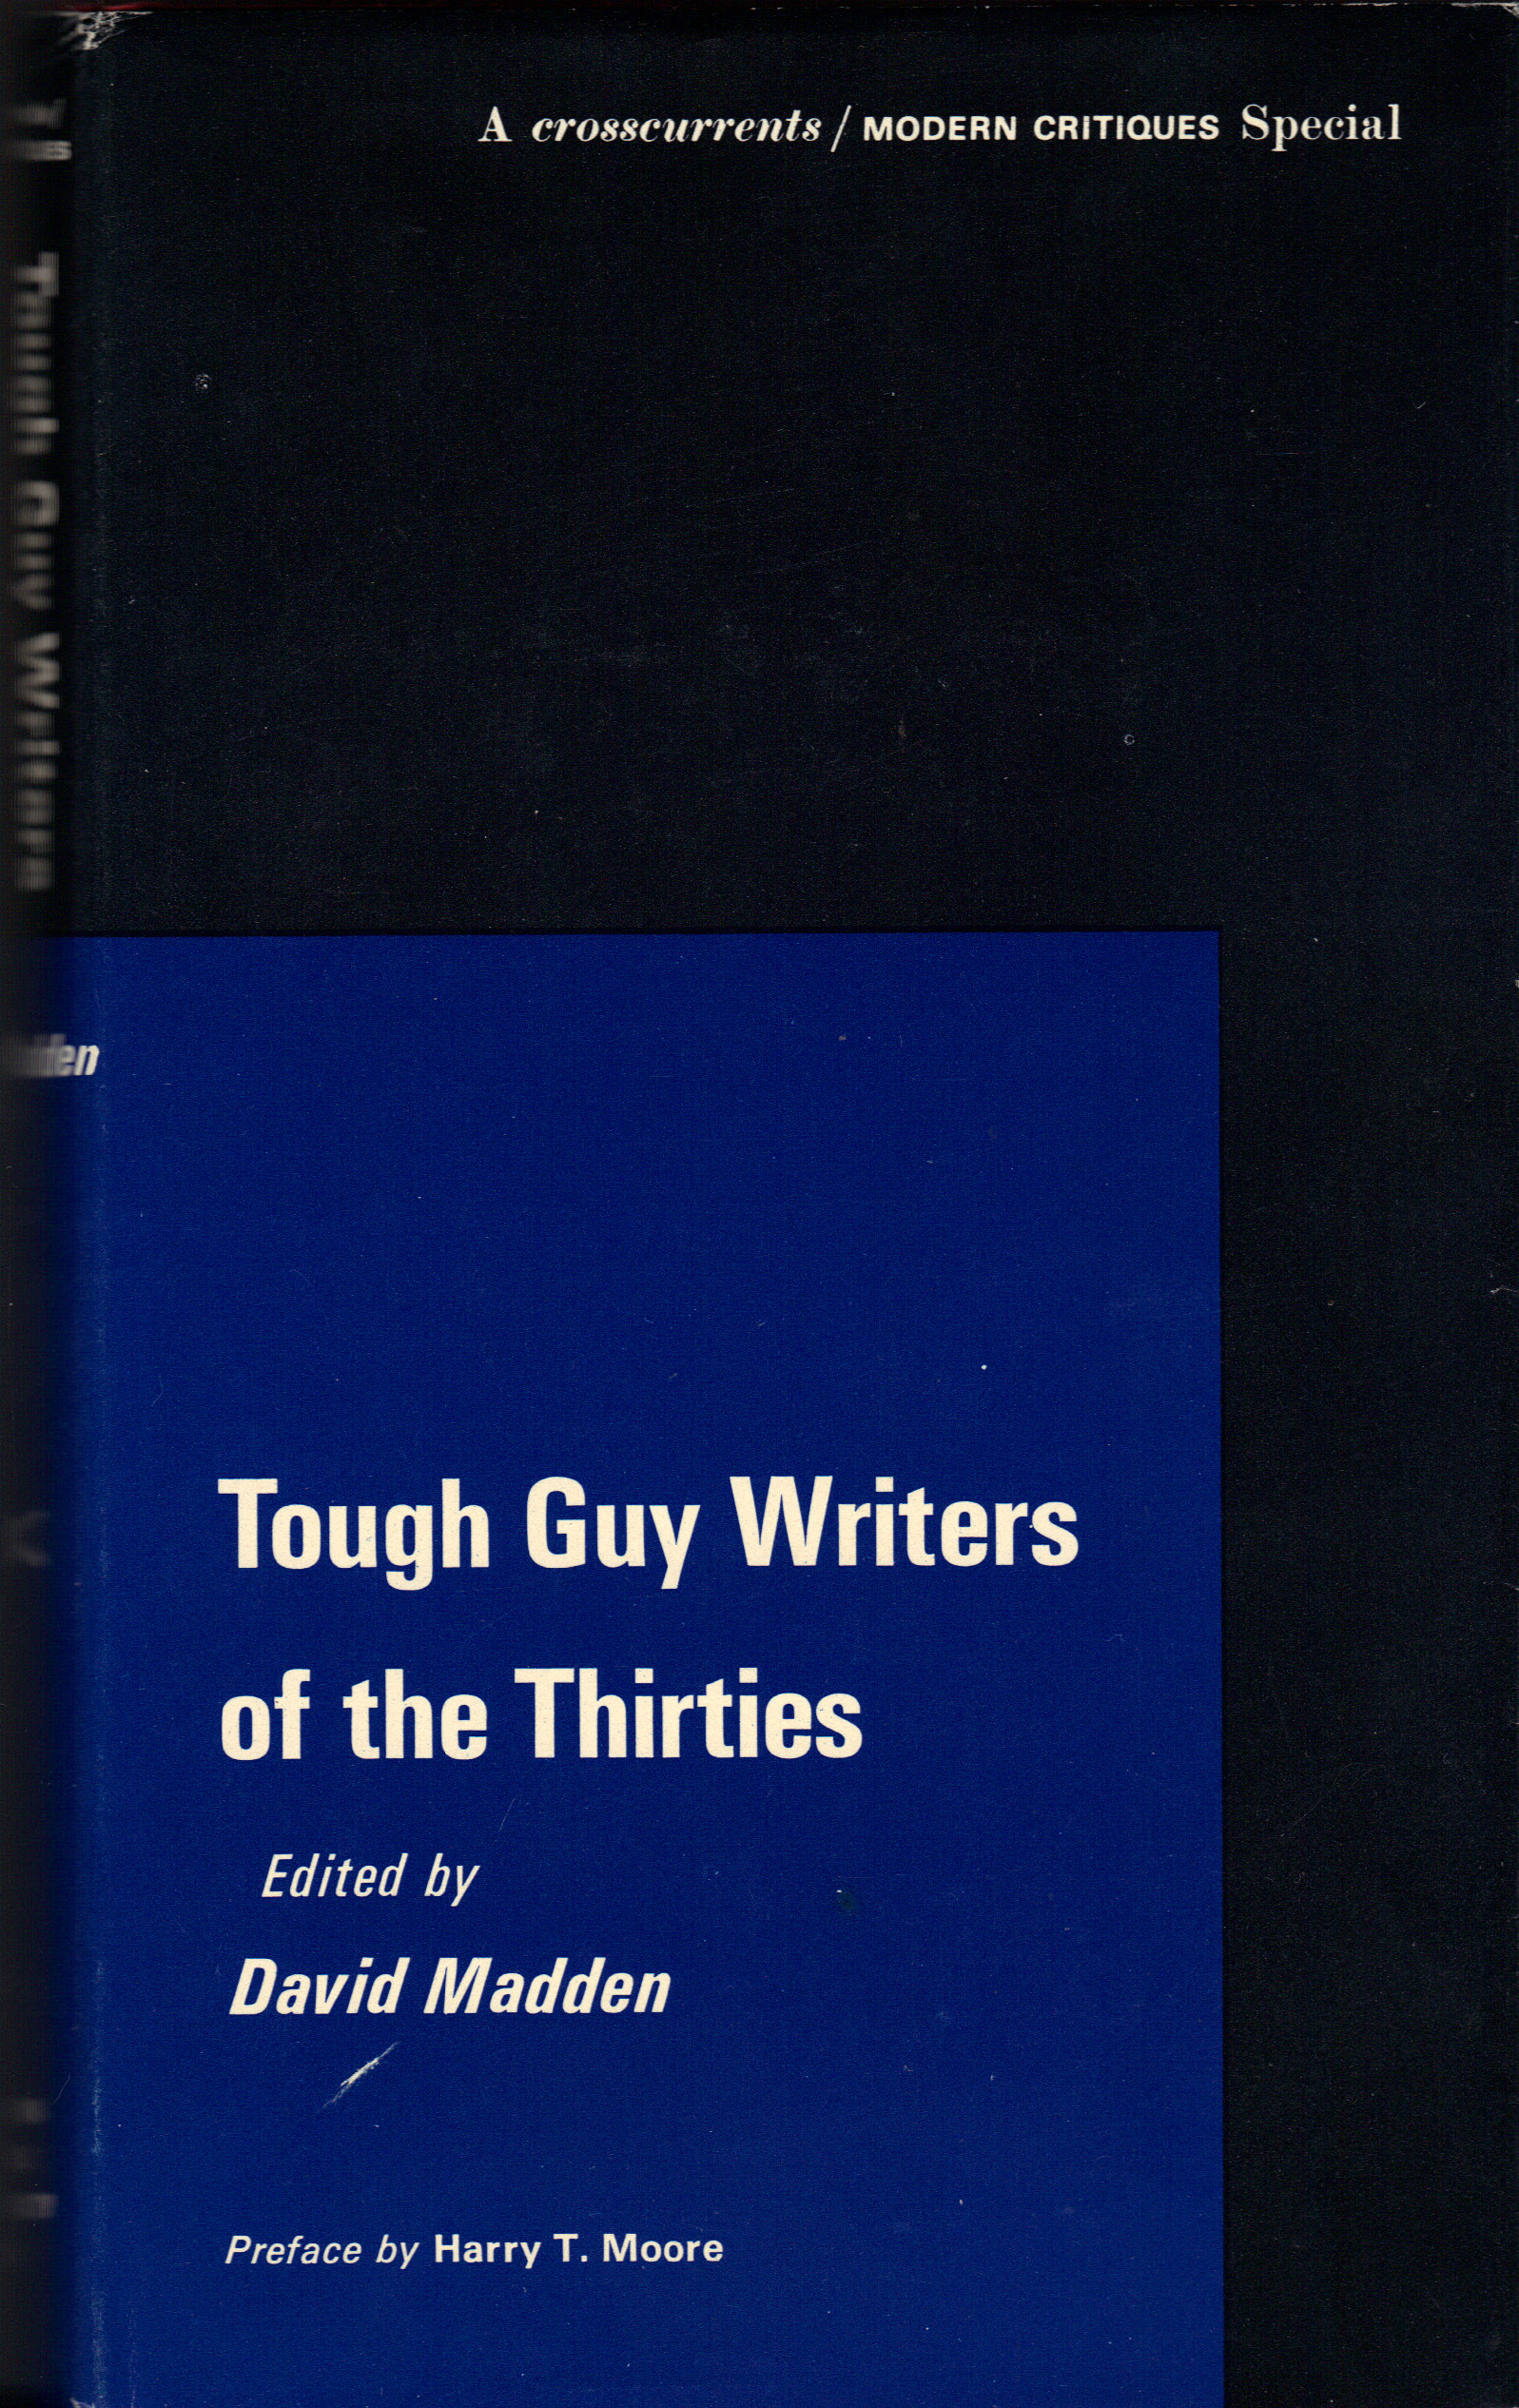 Image for TOUGH GUY WRITERS OF THE THIRTIES